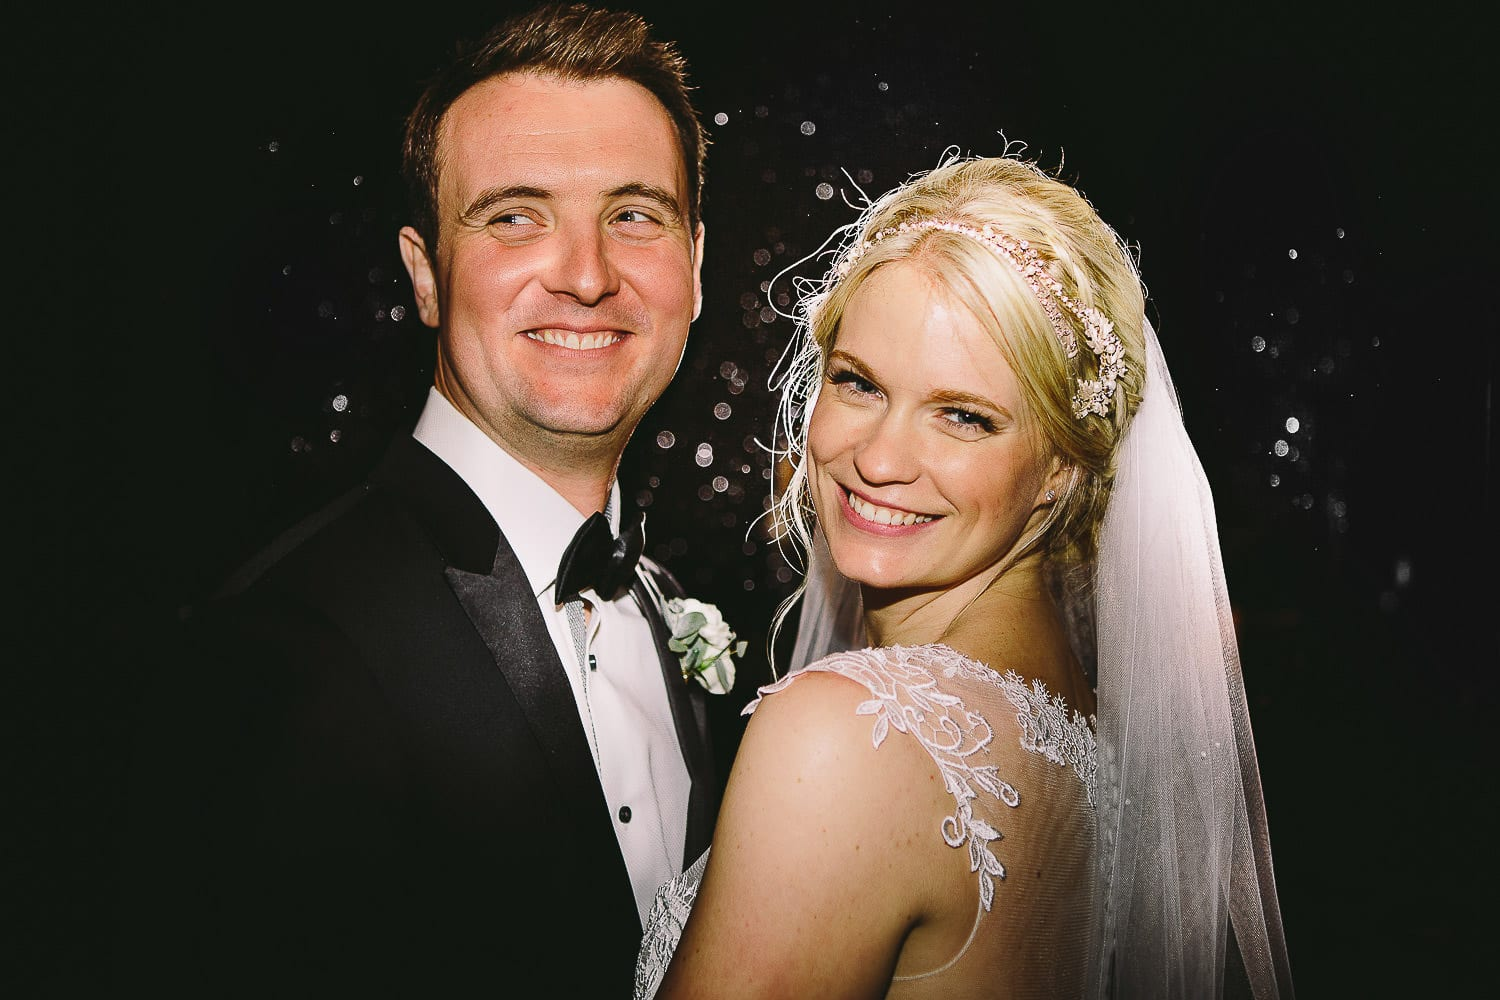 Close up image of the bride and groom in a doorway